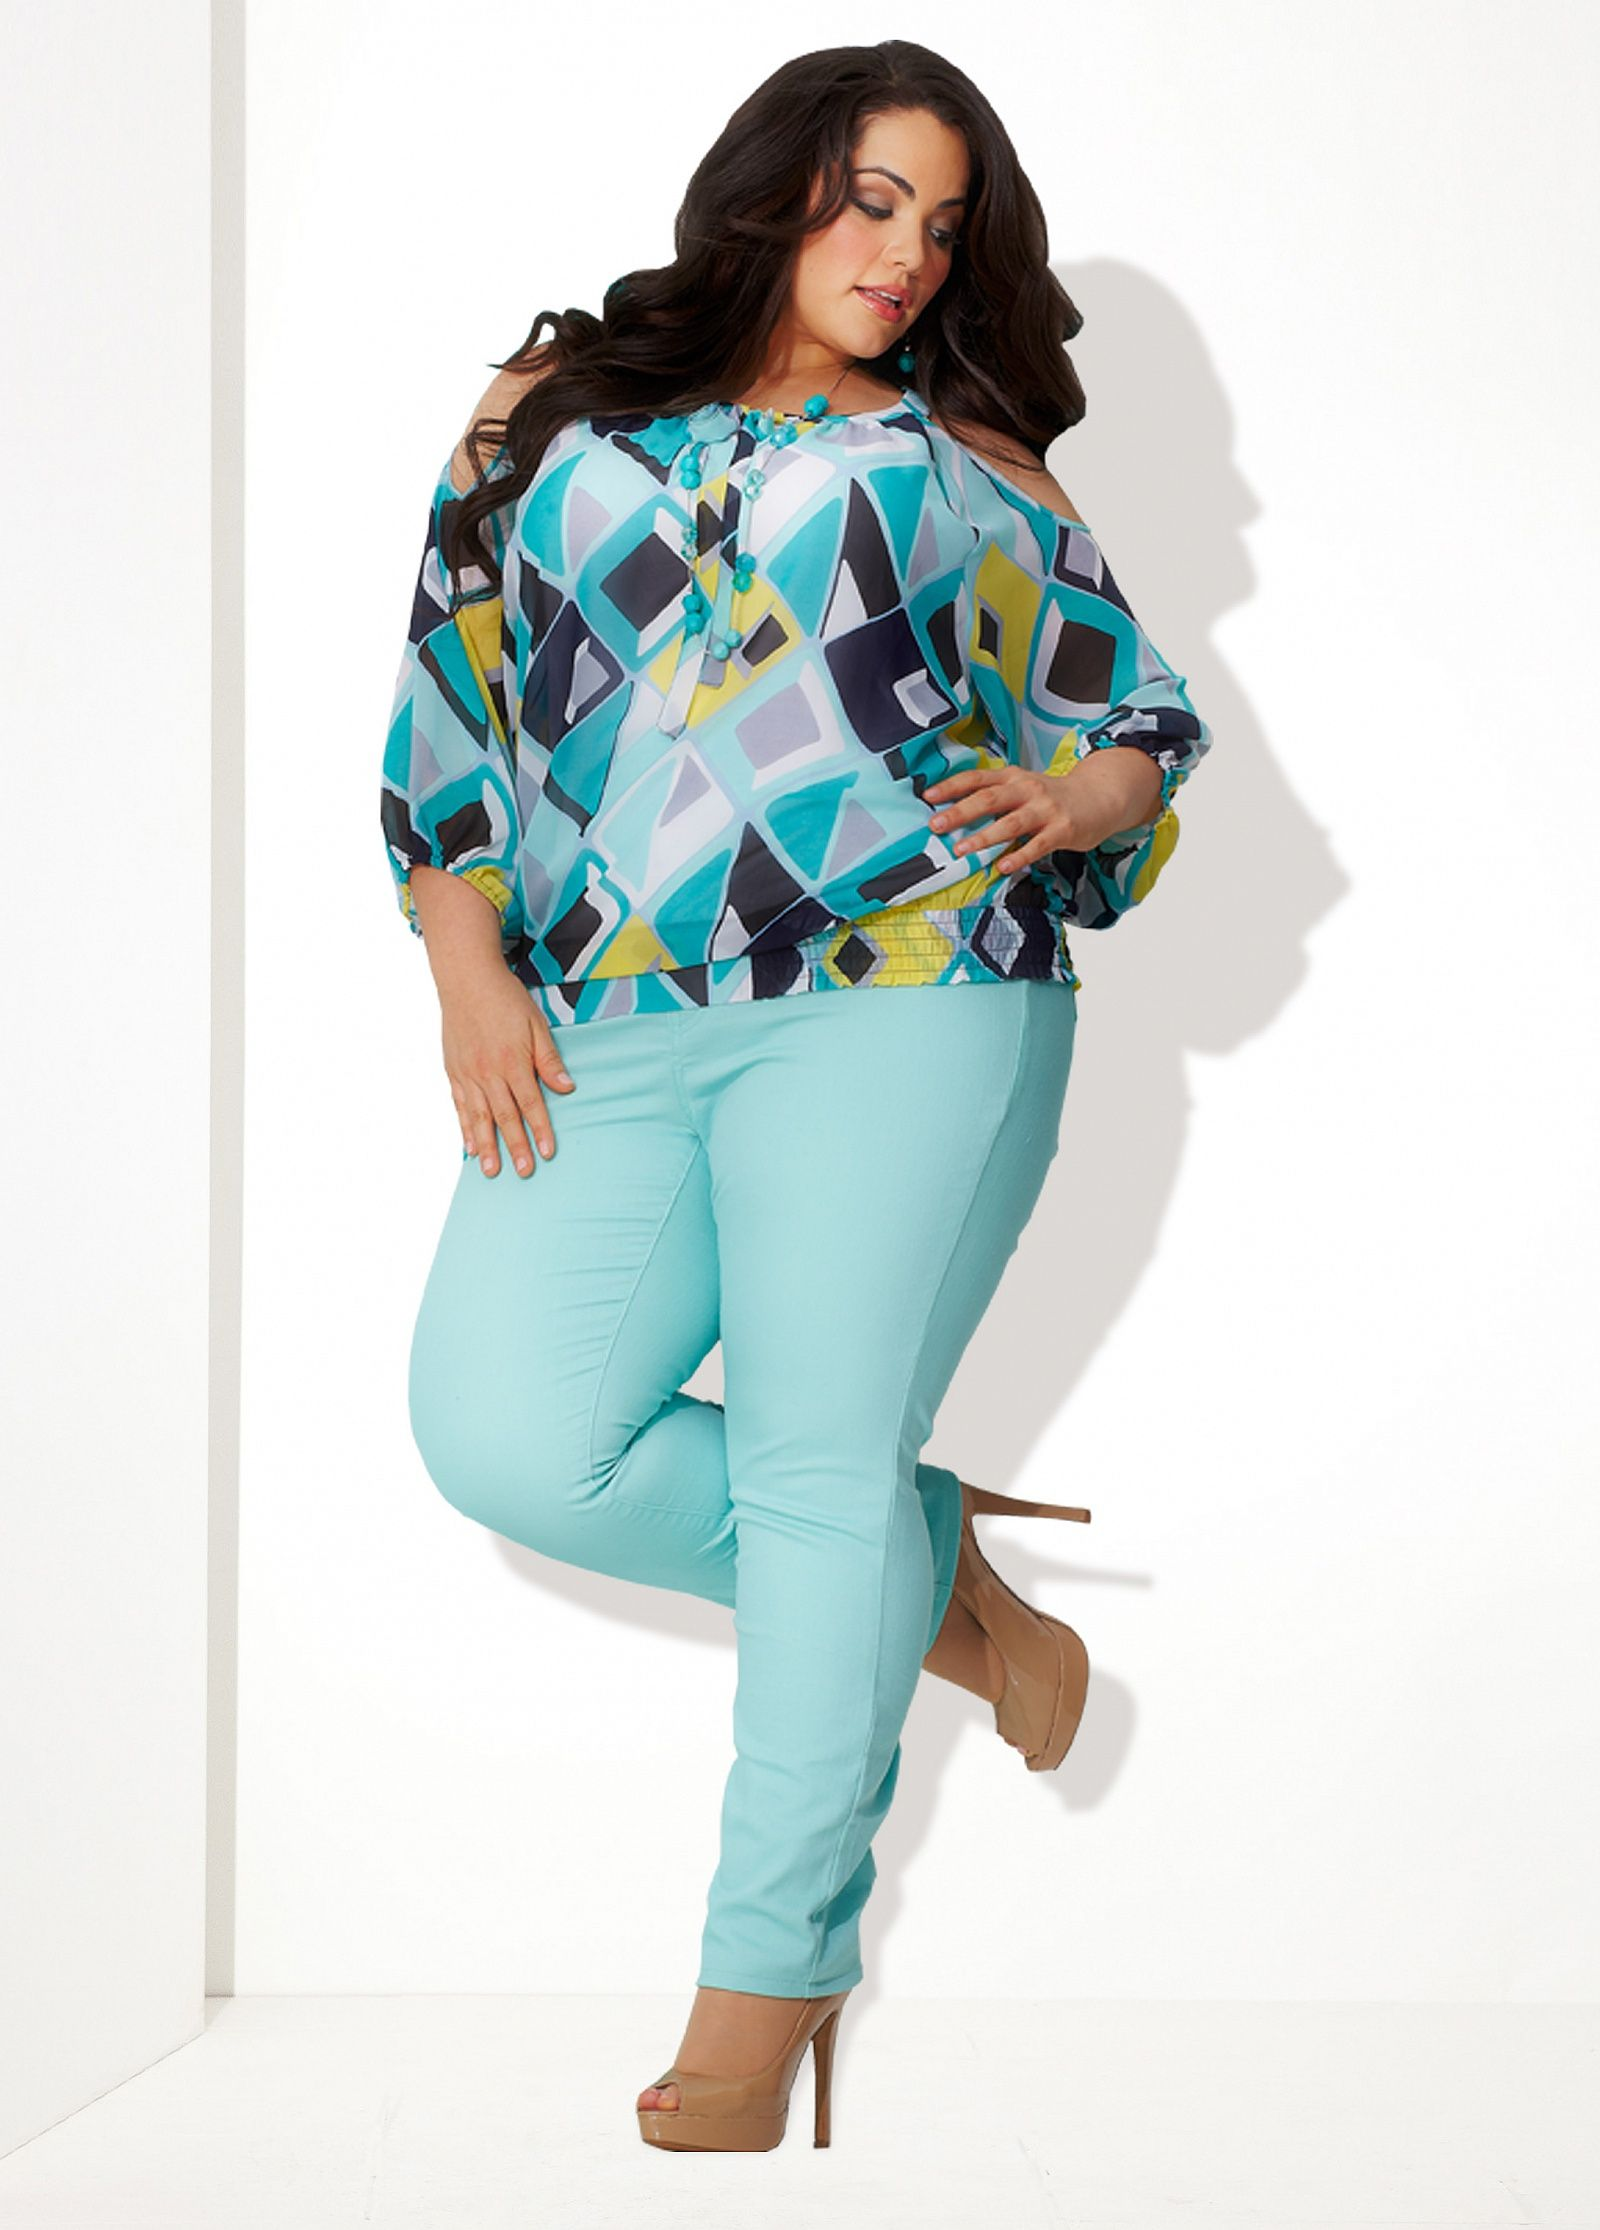 ashley stewart big beautiful curvy real women, real sizes with